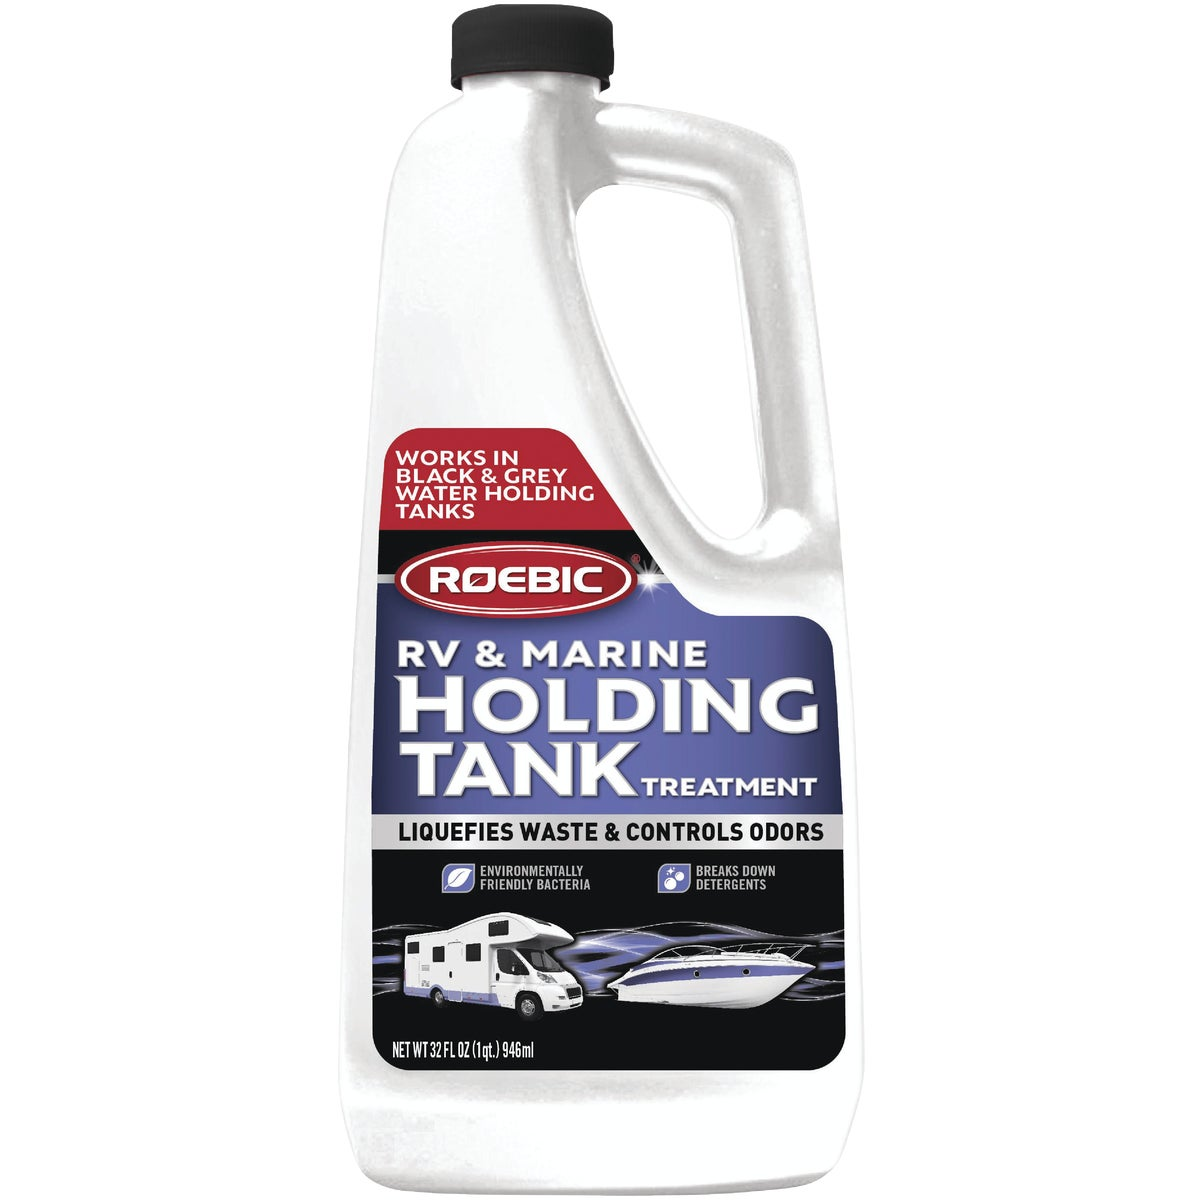 RV HOLDNG TANK TREATMENT - RV-Q-12 by Roebic Laboratories